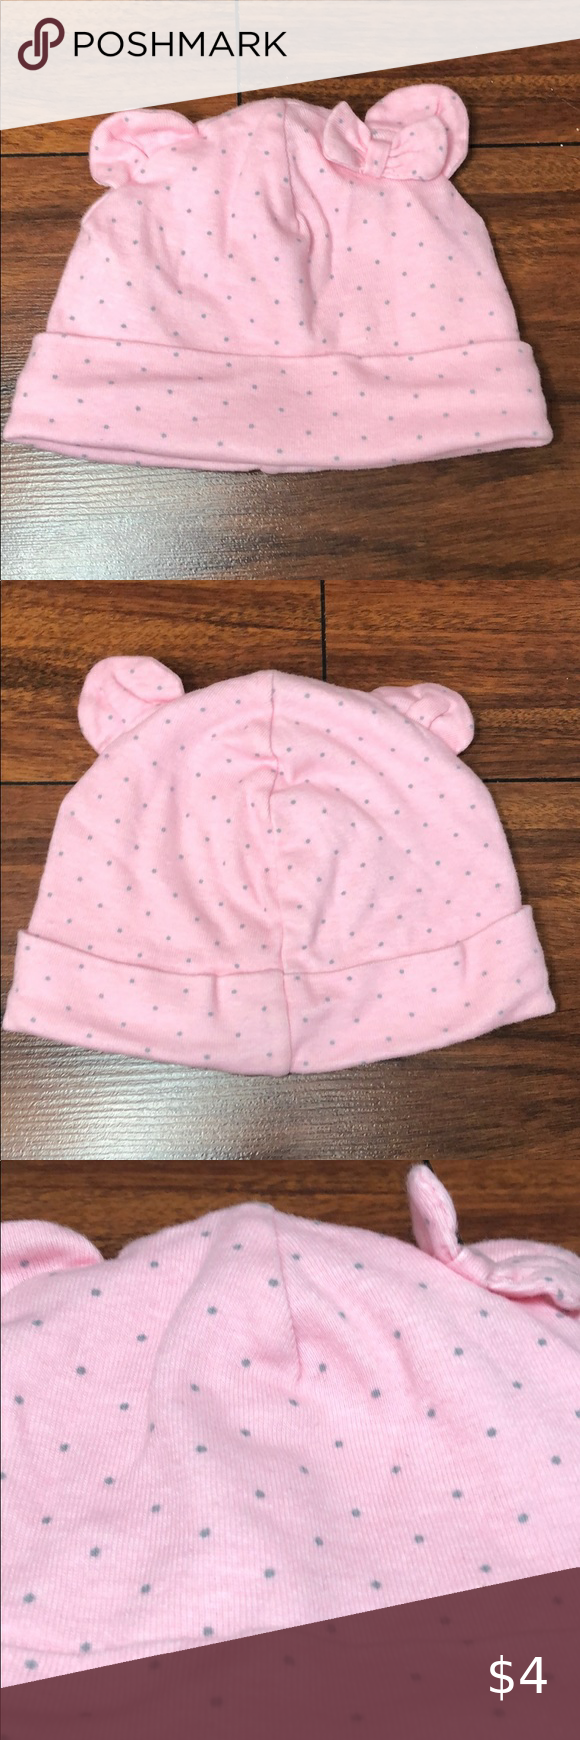 The Childrens Place Girls Llama Hat